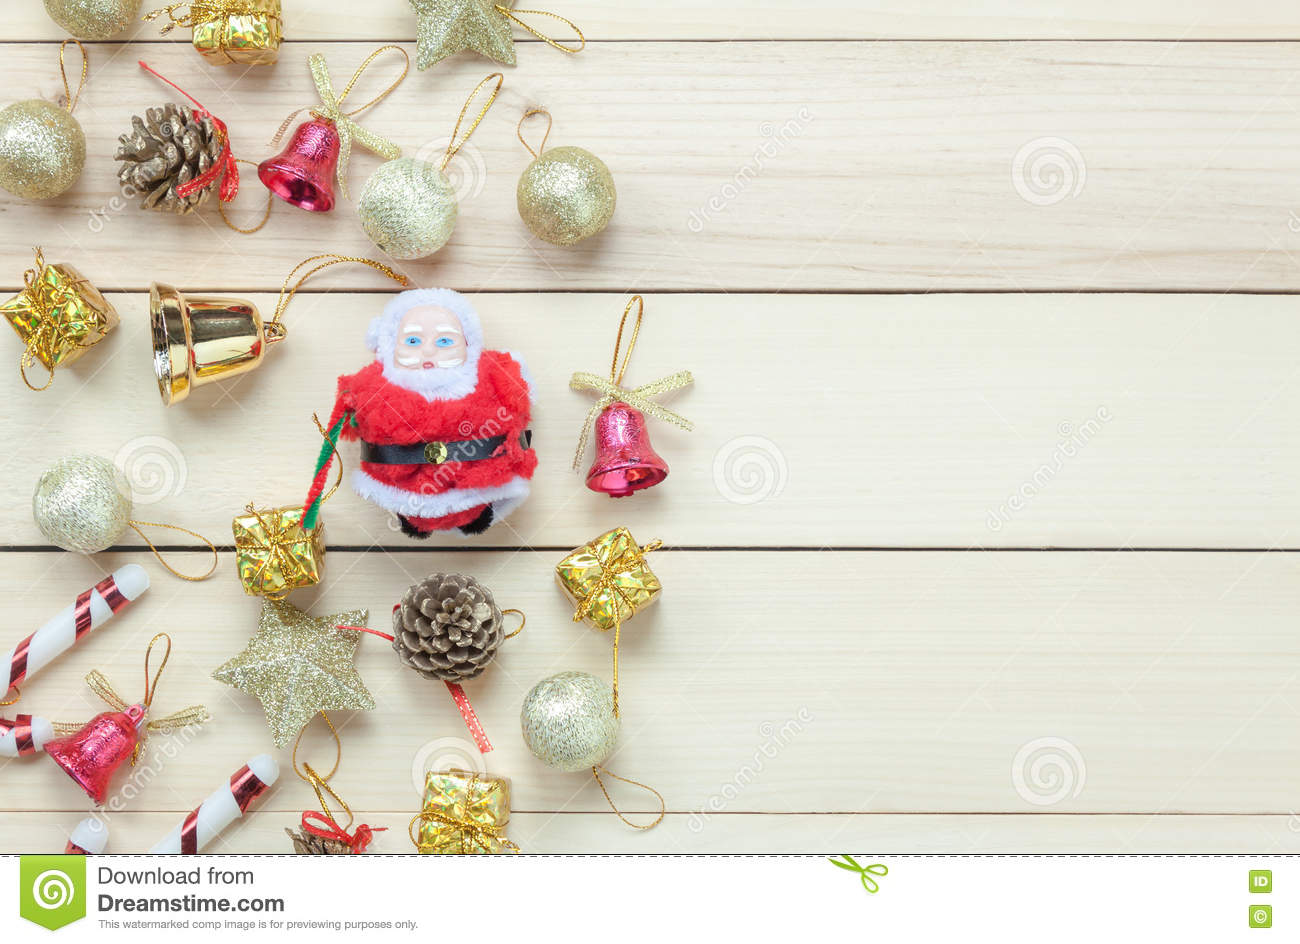 Top view Chrismas decoration and Santa Claus doll on wooden table with copy space.